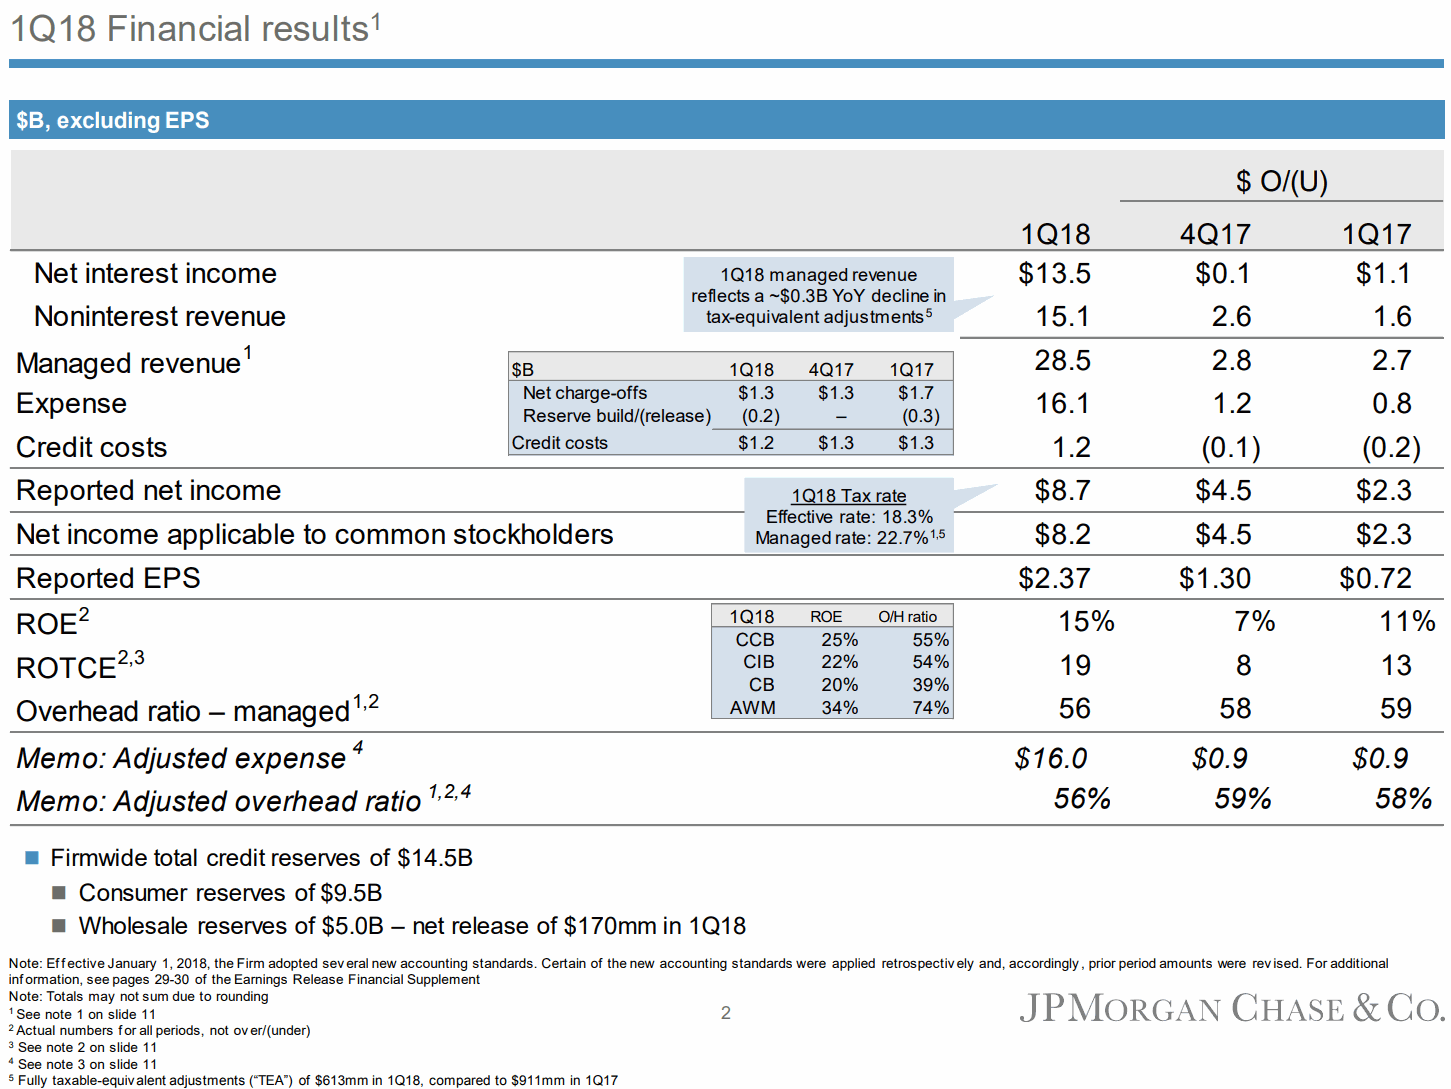 JPMorgan-1Q18-Financial-highlights-Net-interest-income